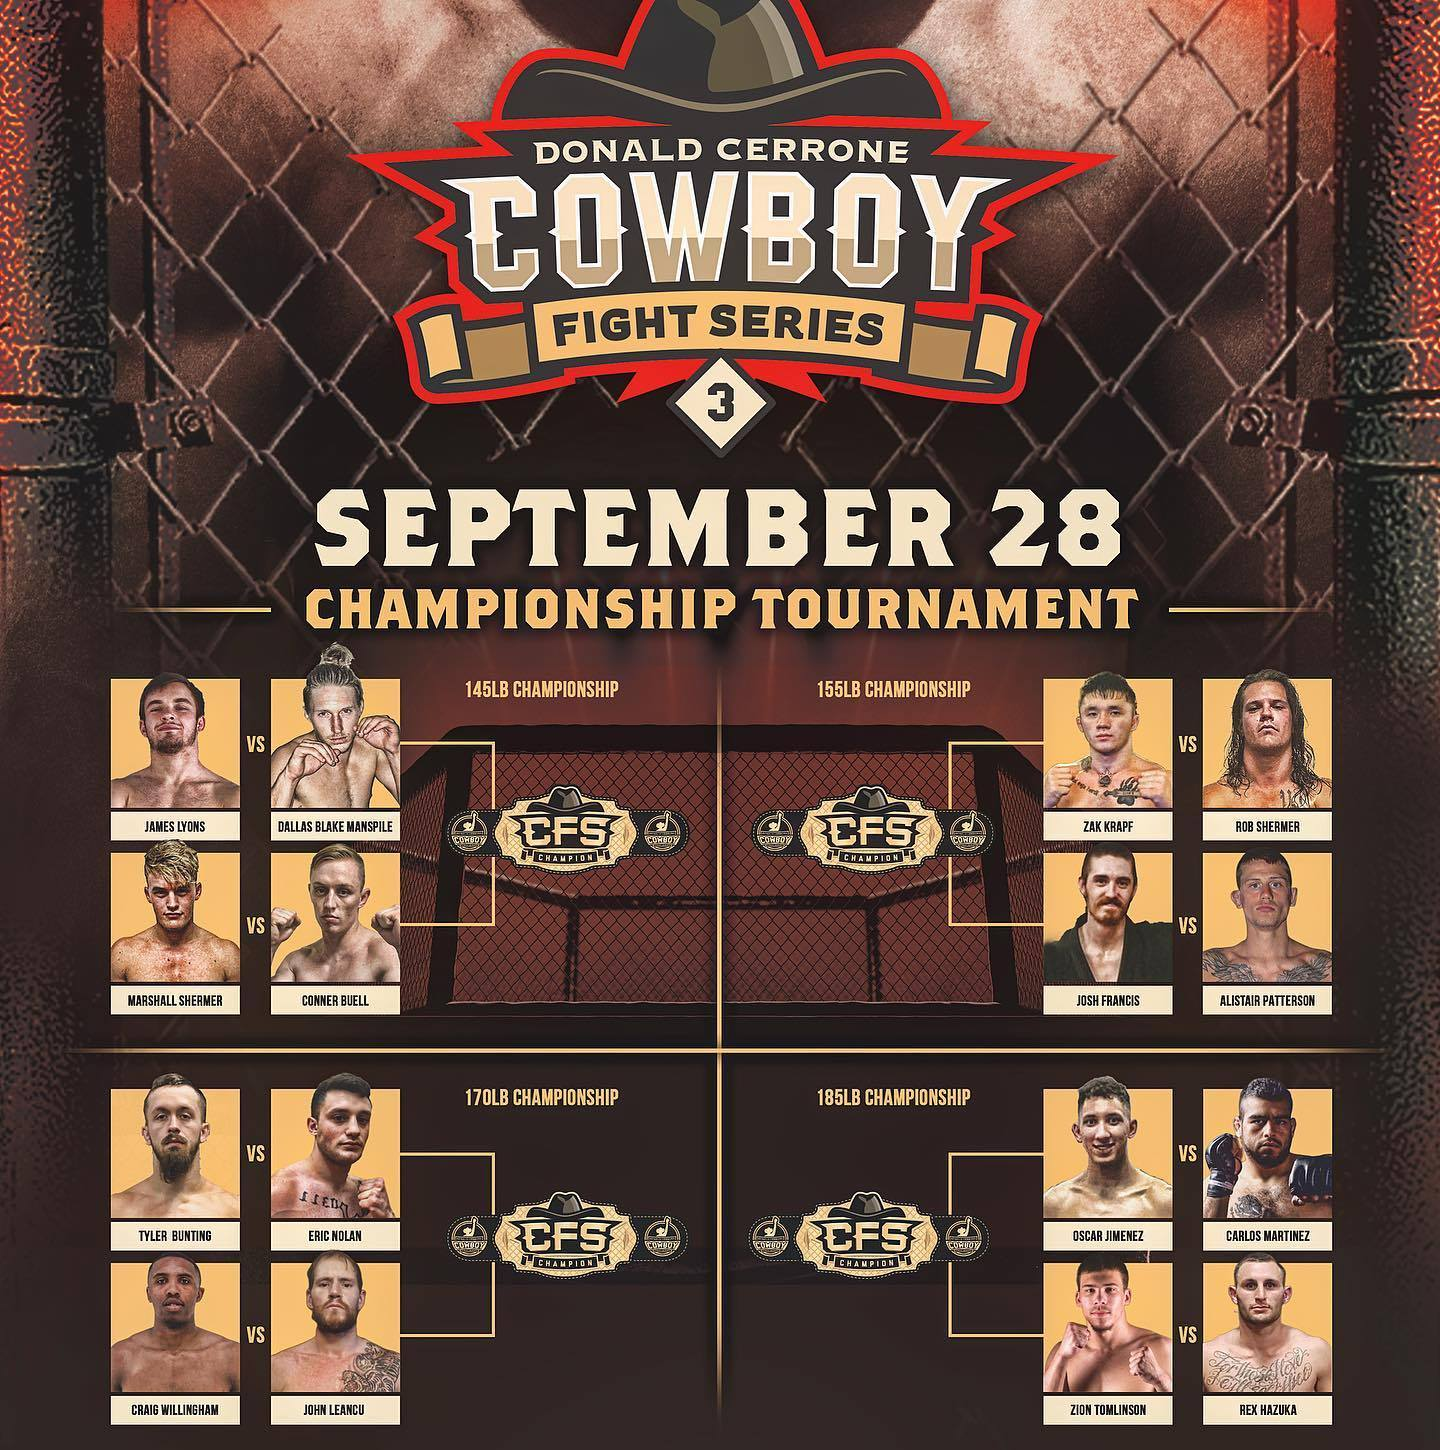 Brackets revealed for Cowboy Fight Series semi-final tournaments on September 28